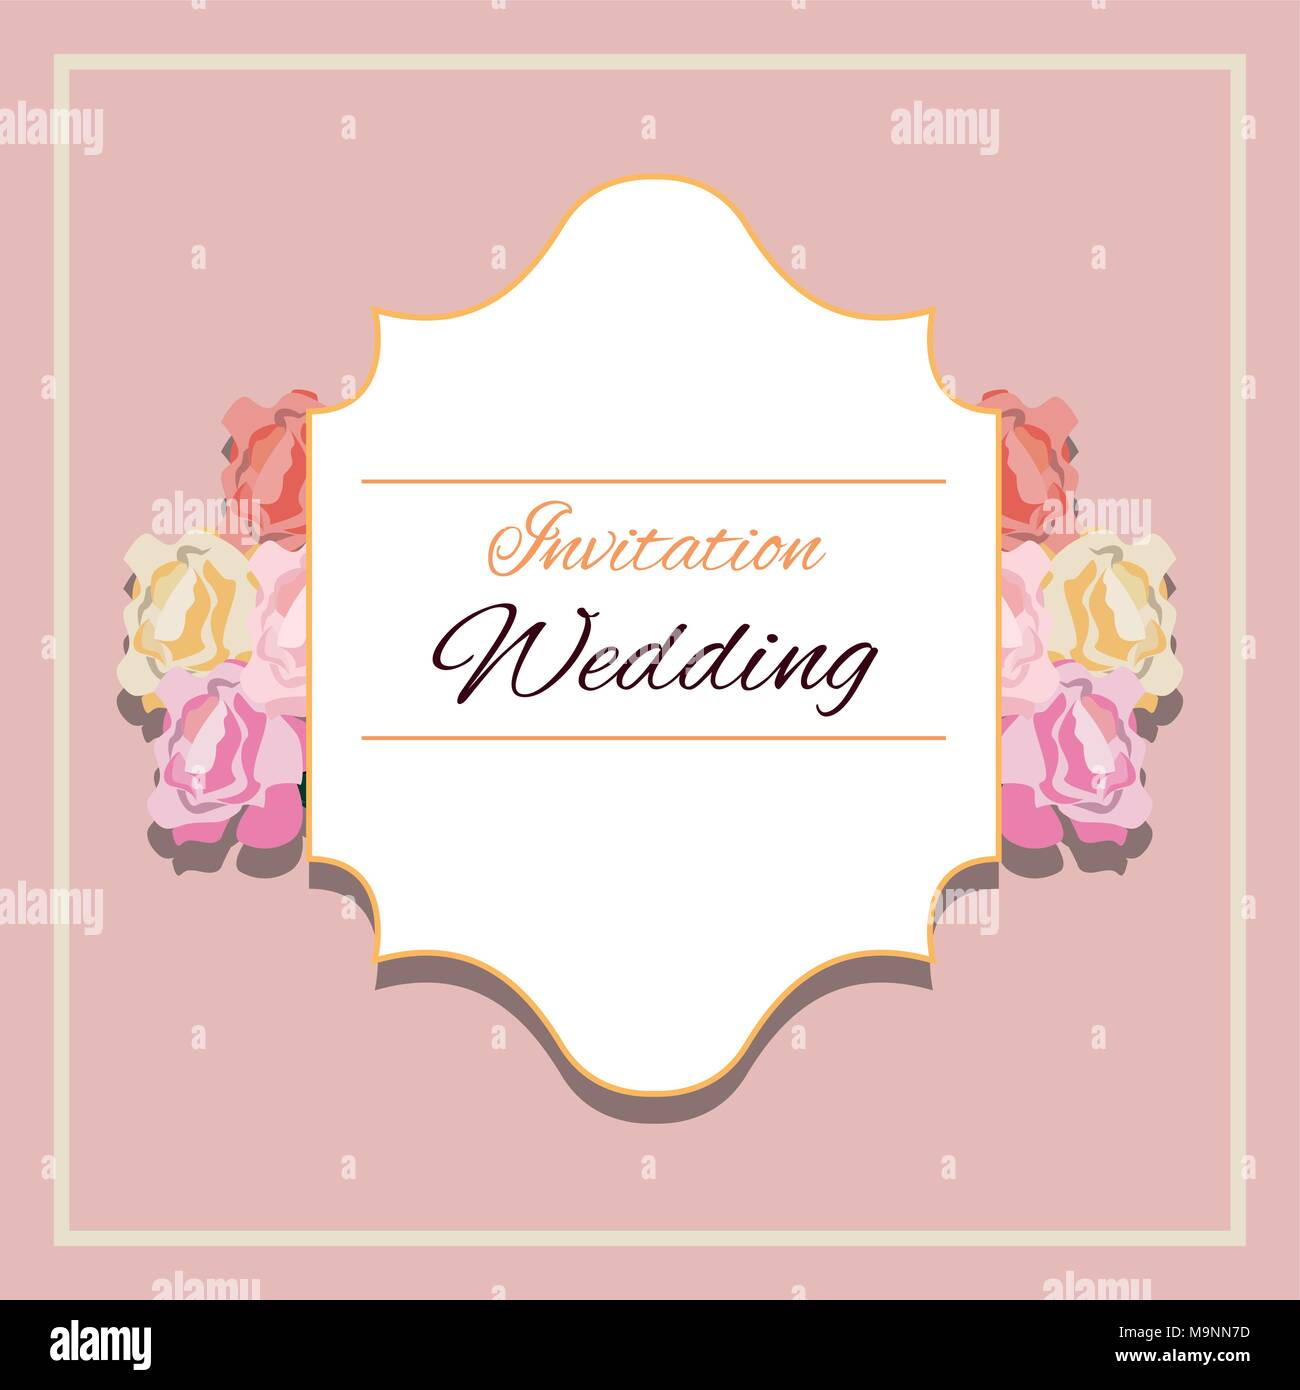 Floral Wedding Invitation Design With Beautiful Flowers And